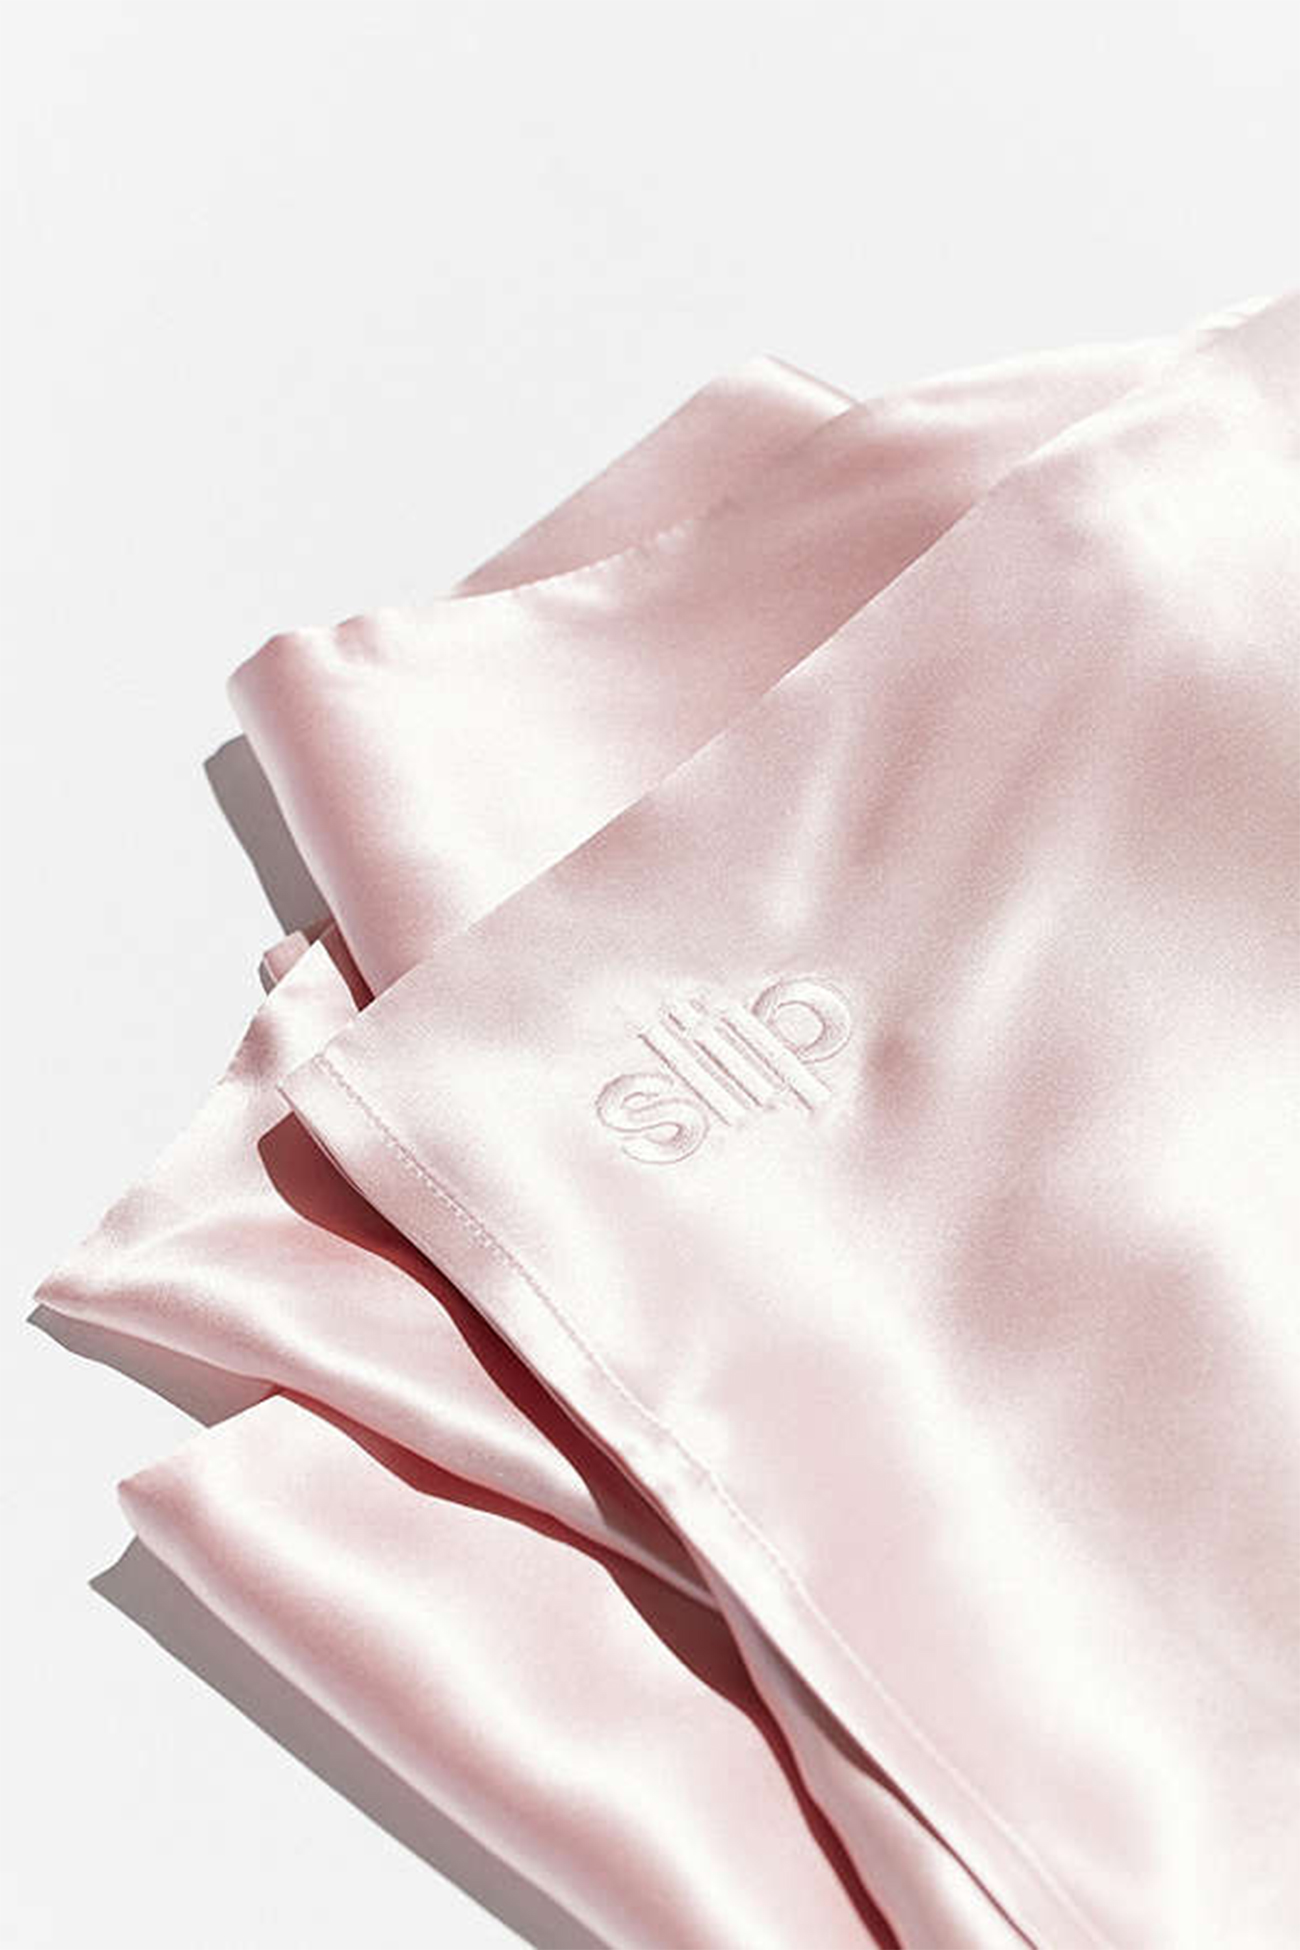 Slip Silk Pillowcase: Gifts for Curly Hair